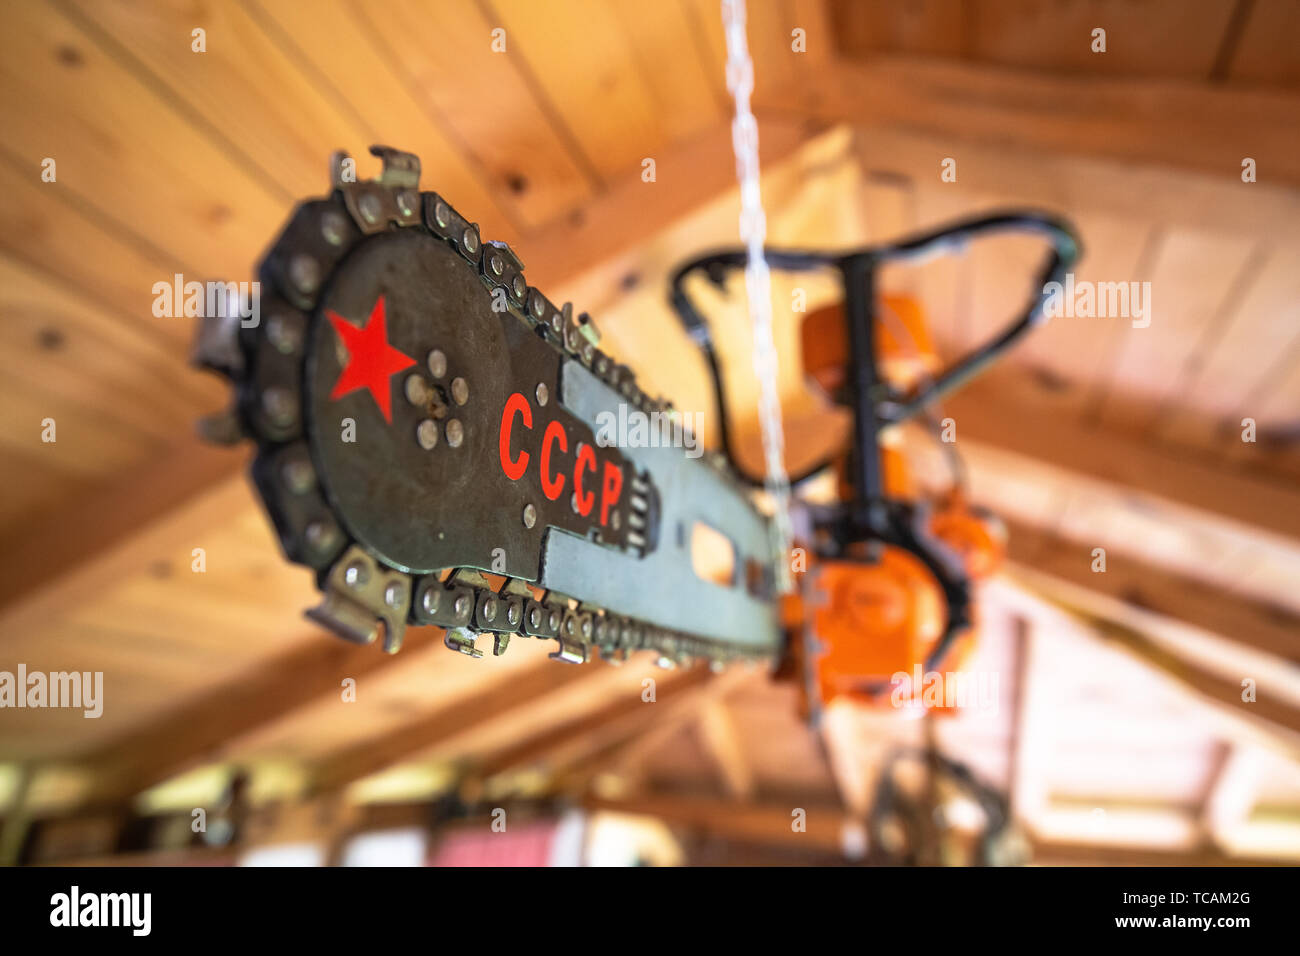 Soviet made chainsaw blade with USSR or CCCP and red star sign, historic soviet gear - Stock Image